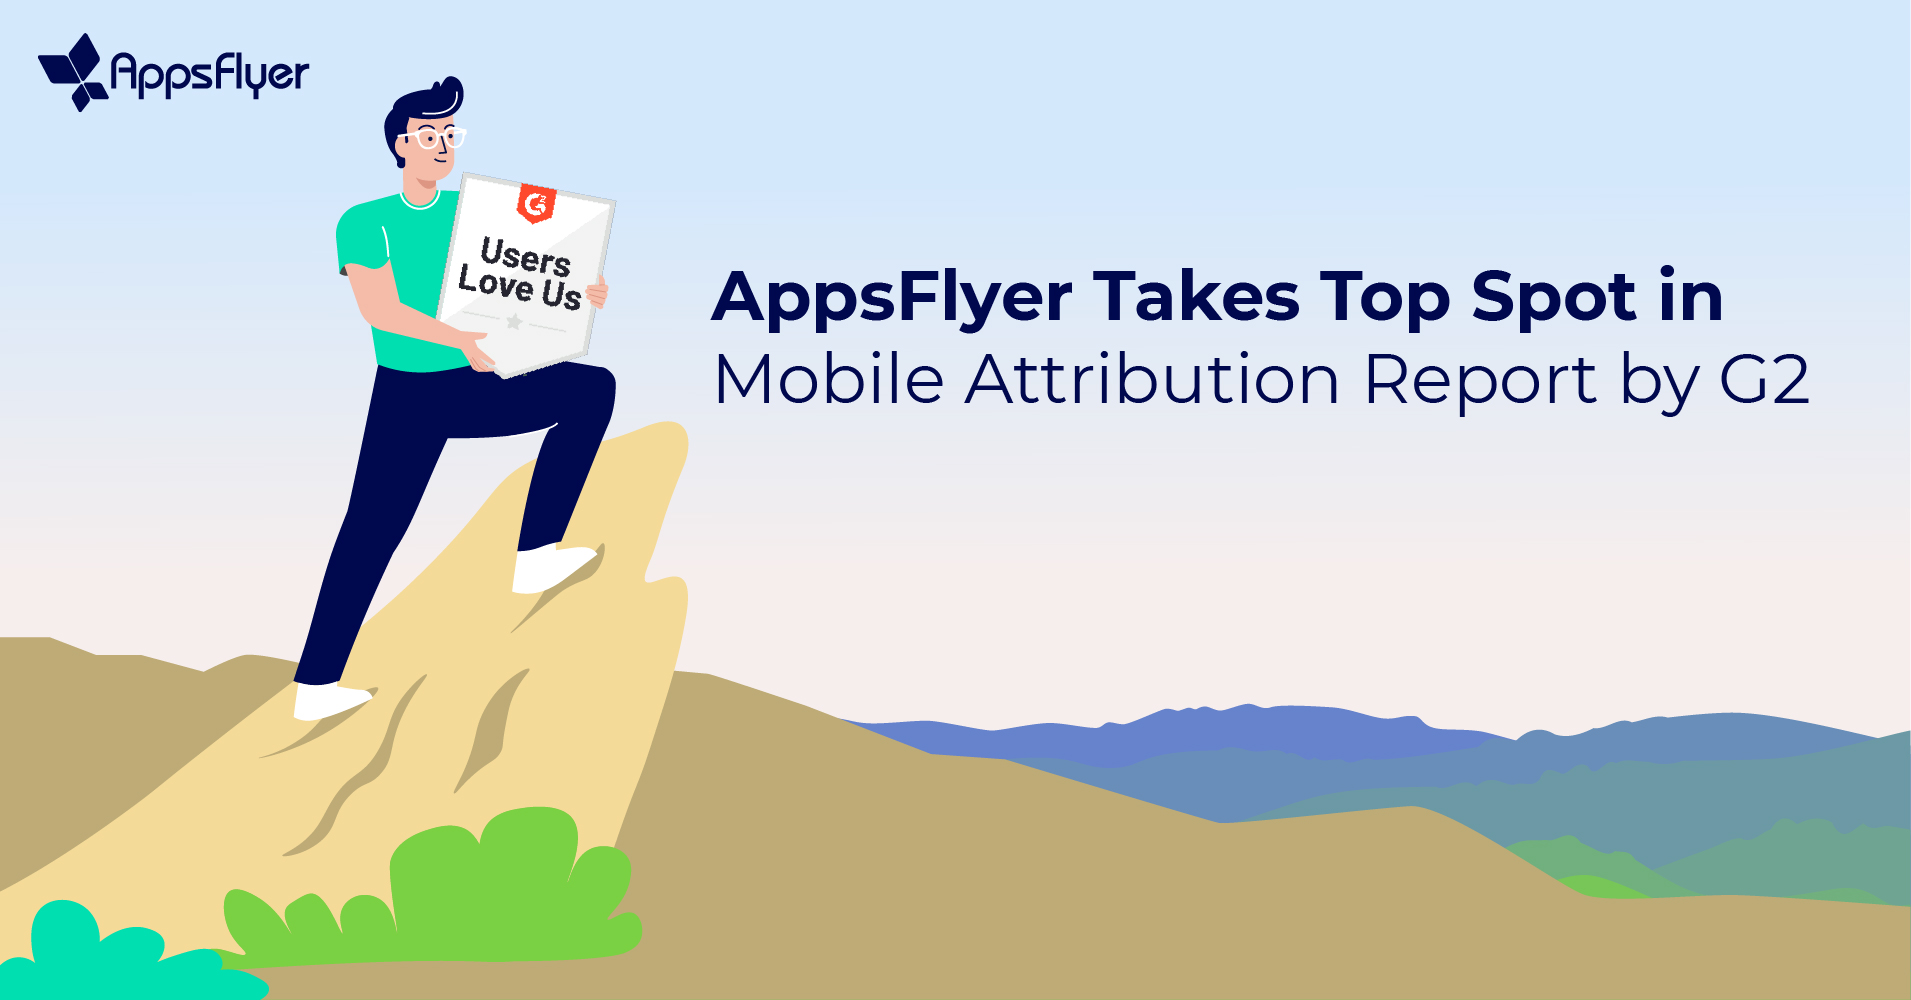 G2 Names AppsFlyer Mobile Attribution Leader